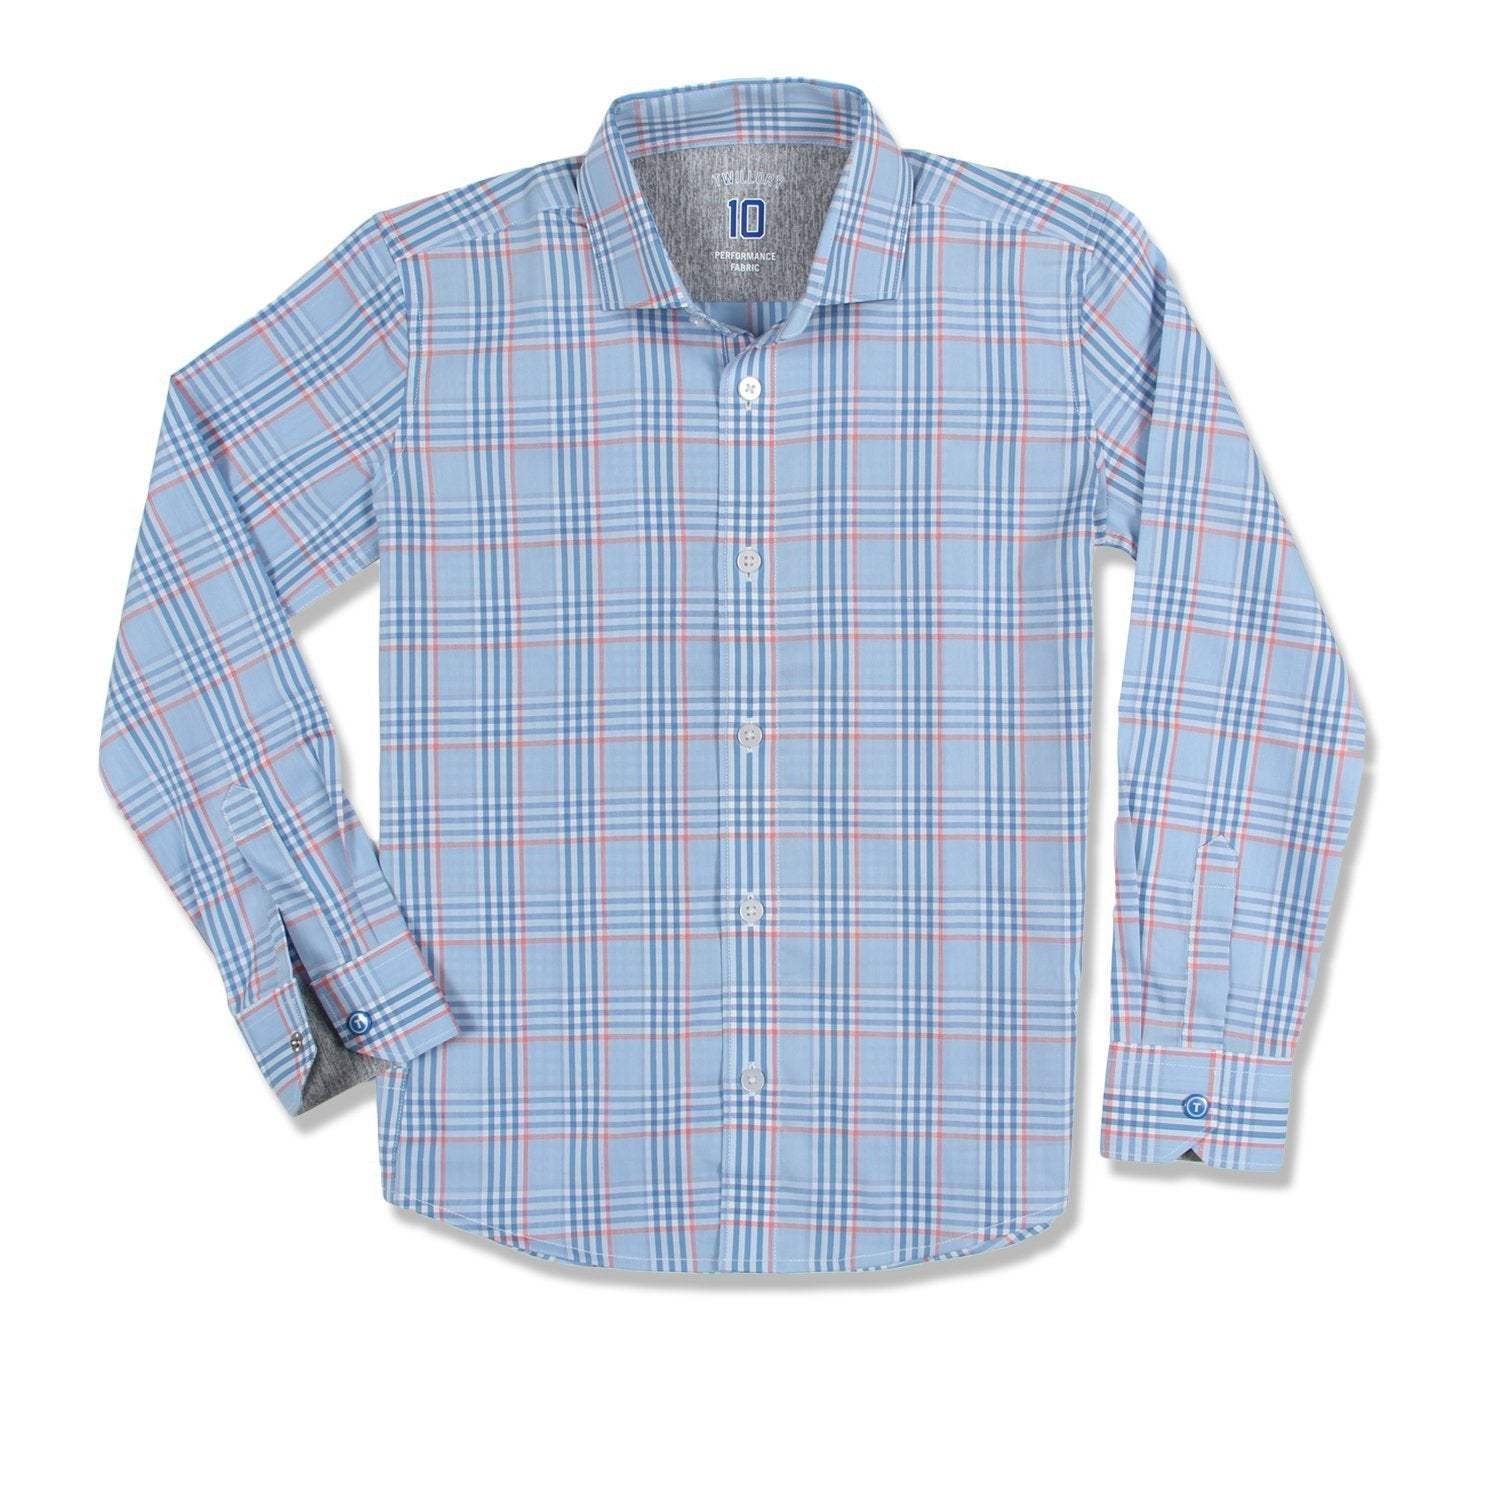 The worst part of looking sharp? The sharp parts: scratchy collars, itchy fabric, wrinkly fabrics. No wonder he doesn't want to wear button down shirts!   But not anymore. Meet the Twillory Performance Shirt , a game-changing hat trick of style and comfort that makes dressing well not just easy, but fun!